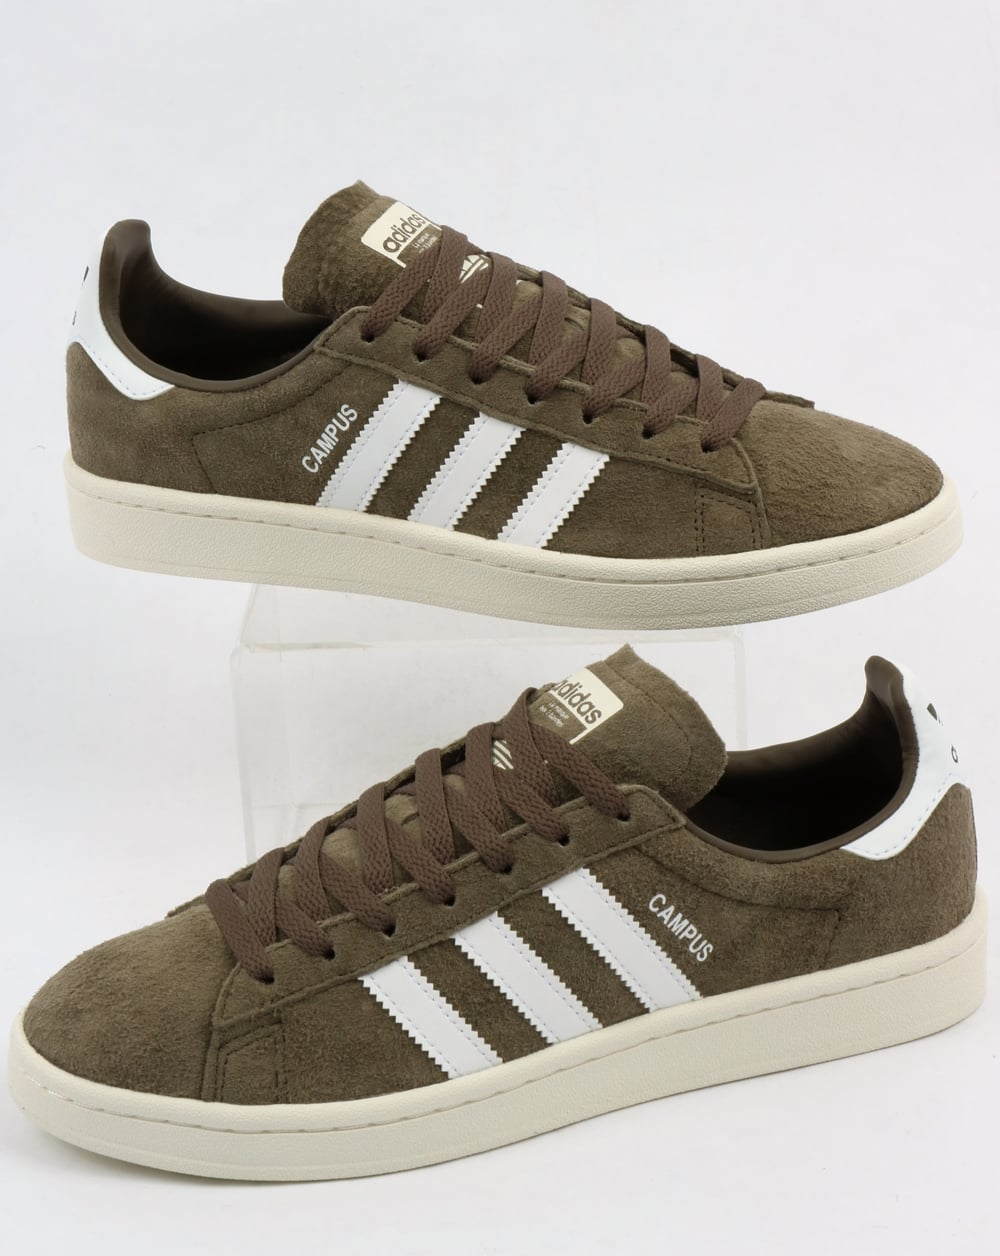 finest selection 713bf 1cc8b adidas Trainers Adidas Campus Trainers Branch Green White